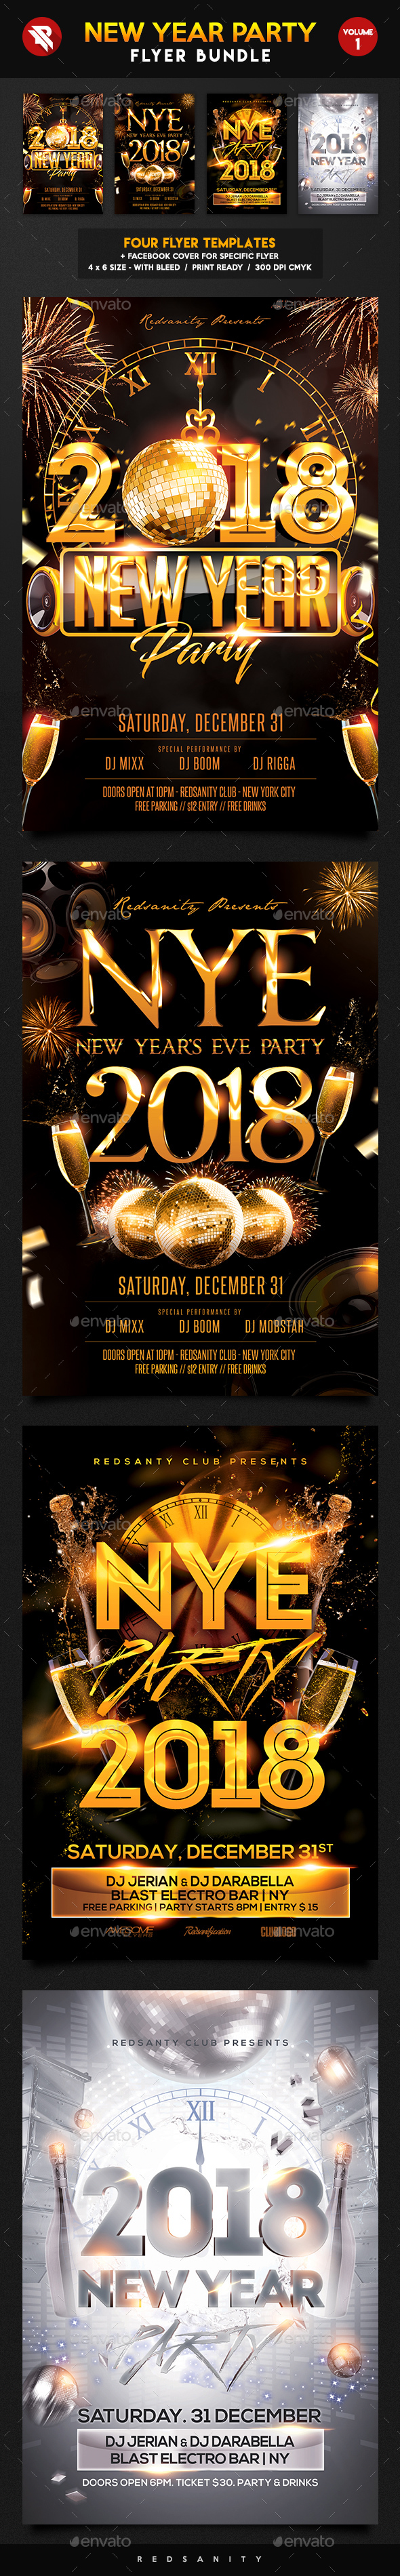 New Year Party Flyer Bundle Vol.1 - Clubs & Parties Events